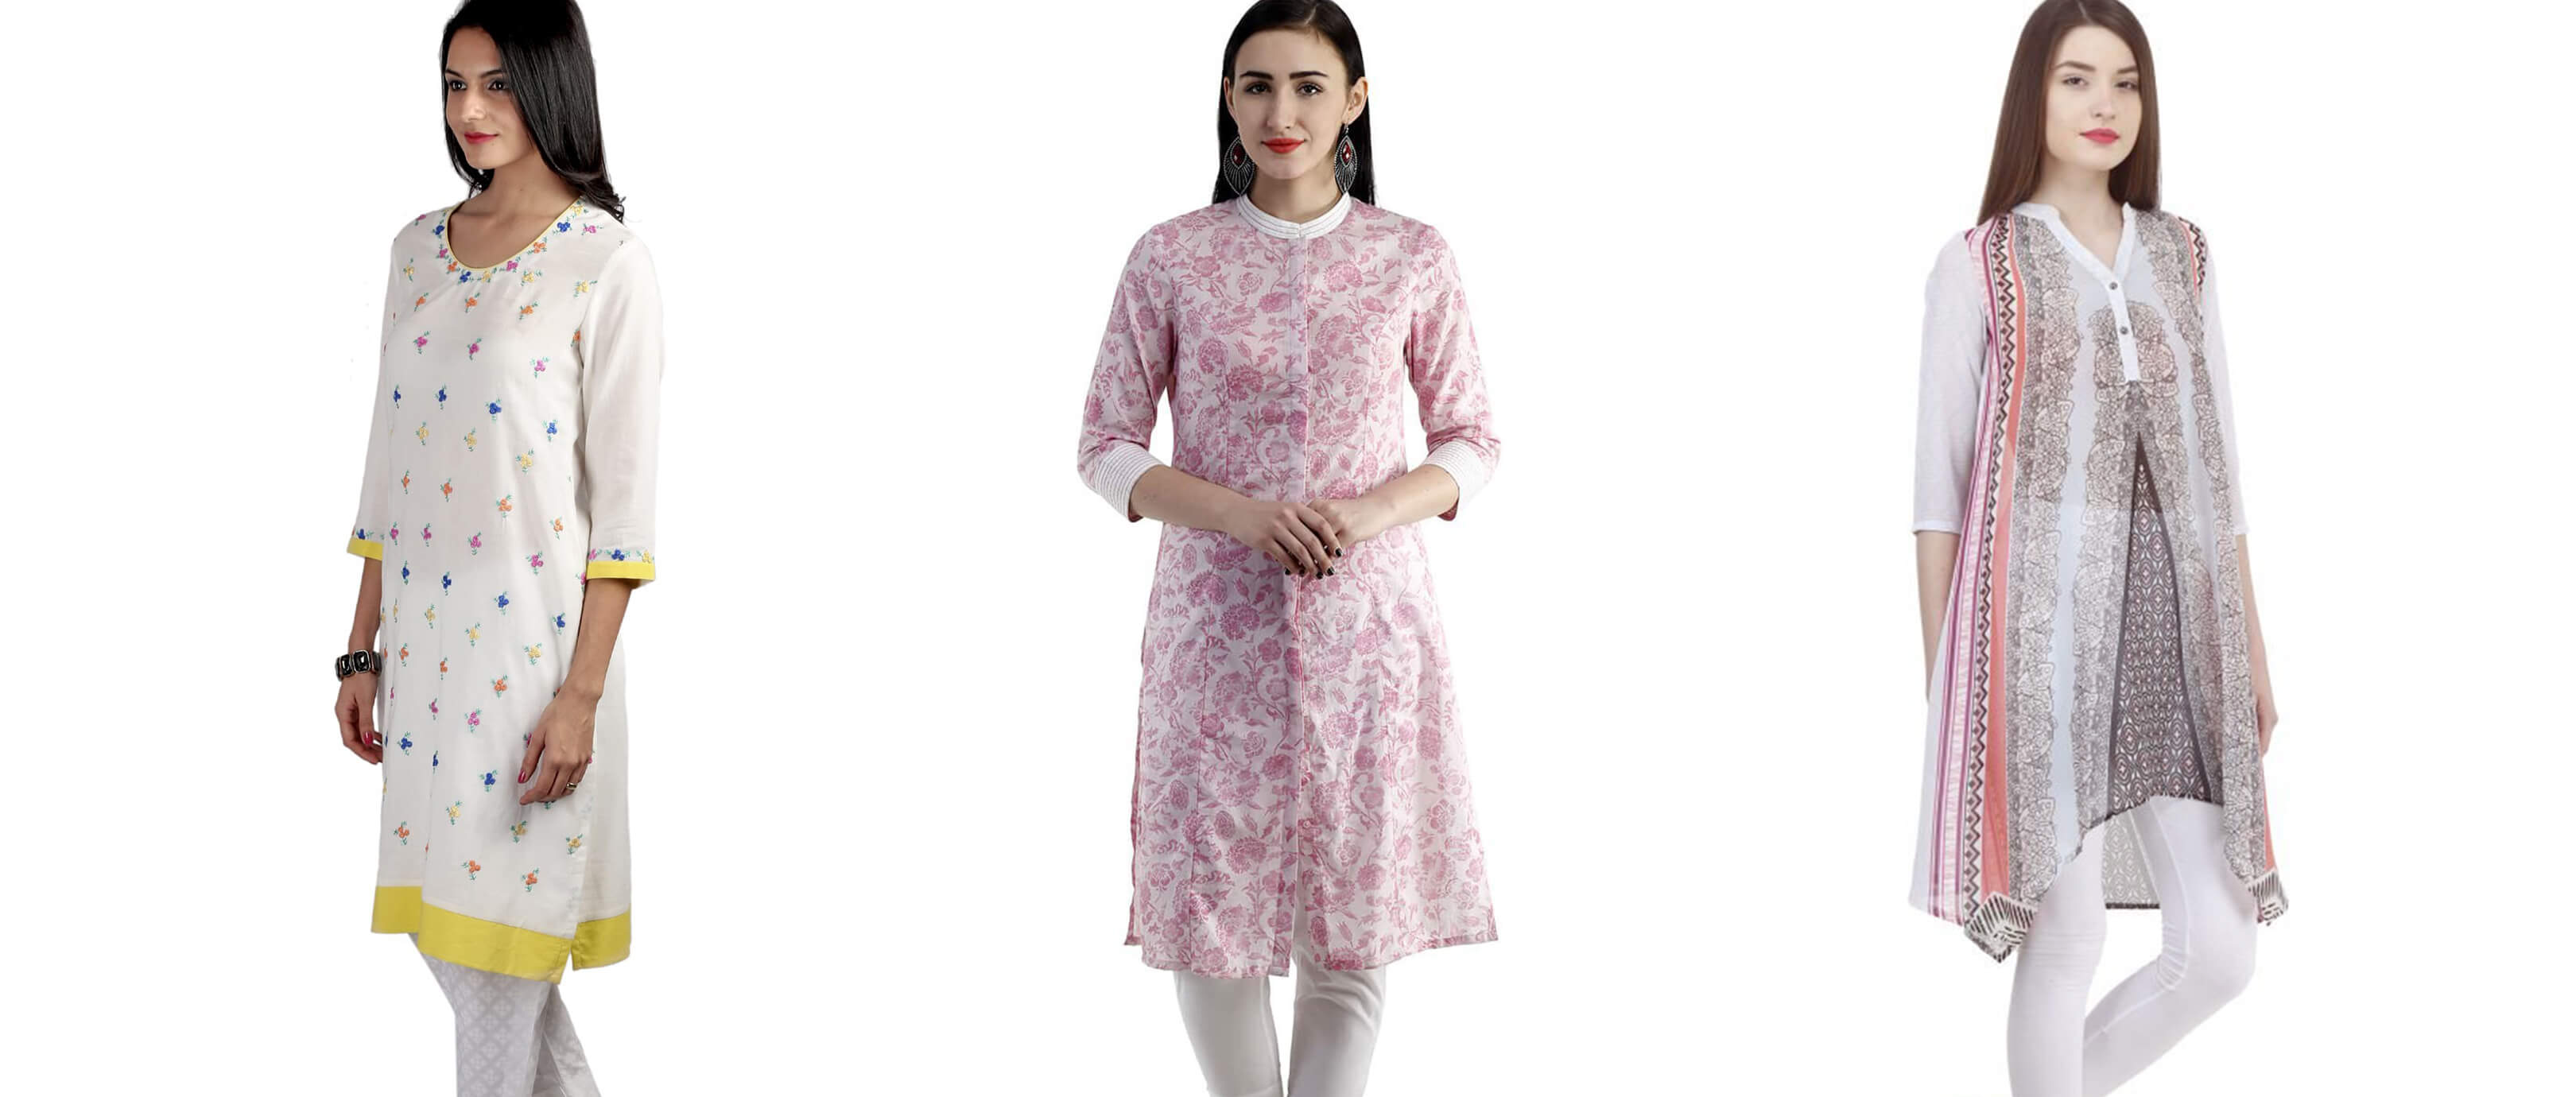 Kurtis_For_Office_Featured_Image_Fashion_Style